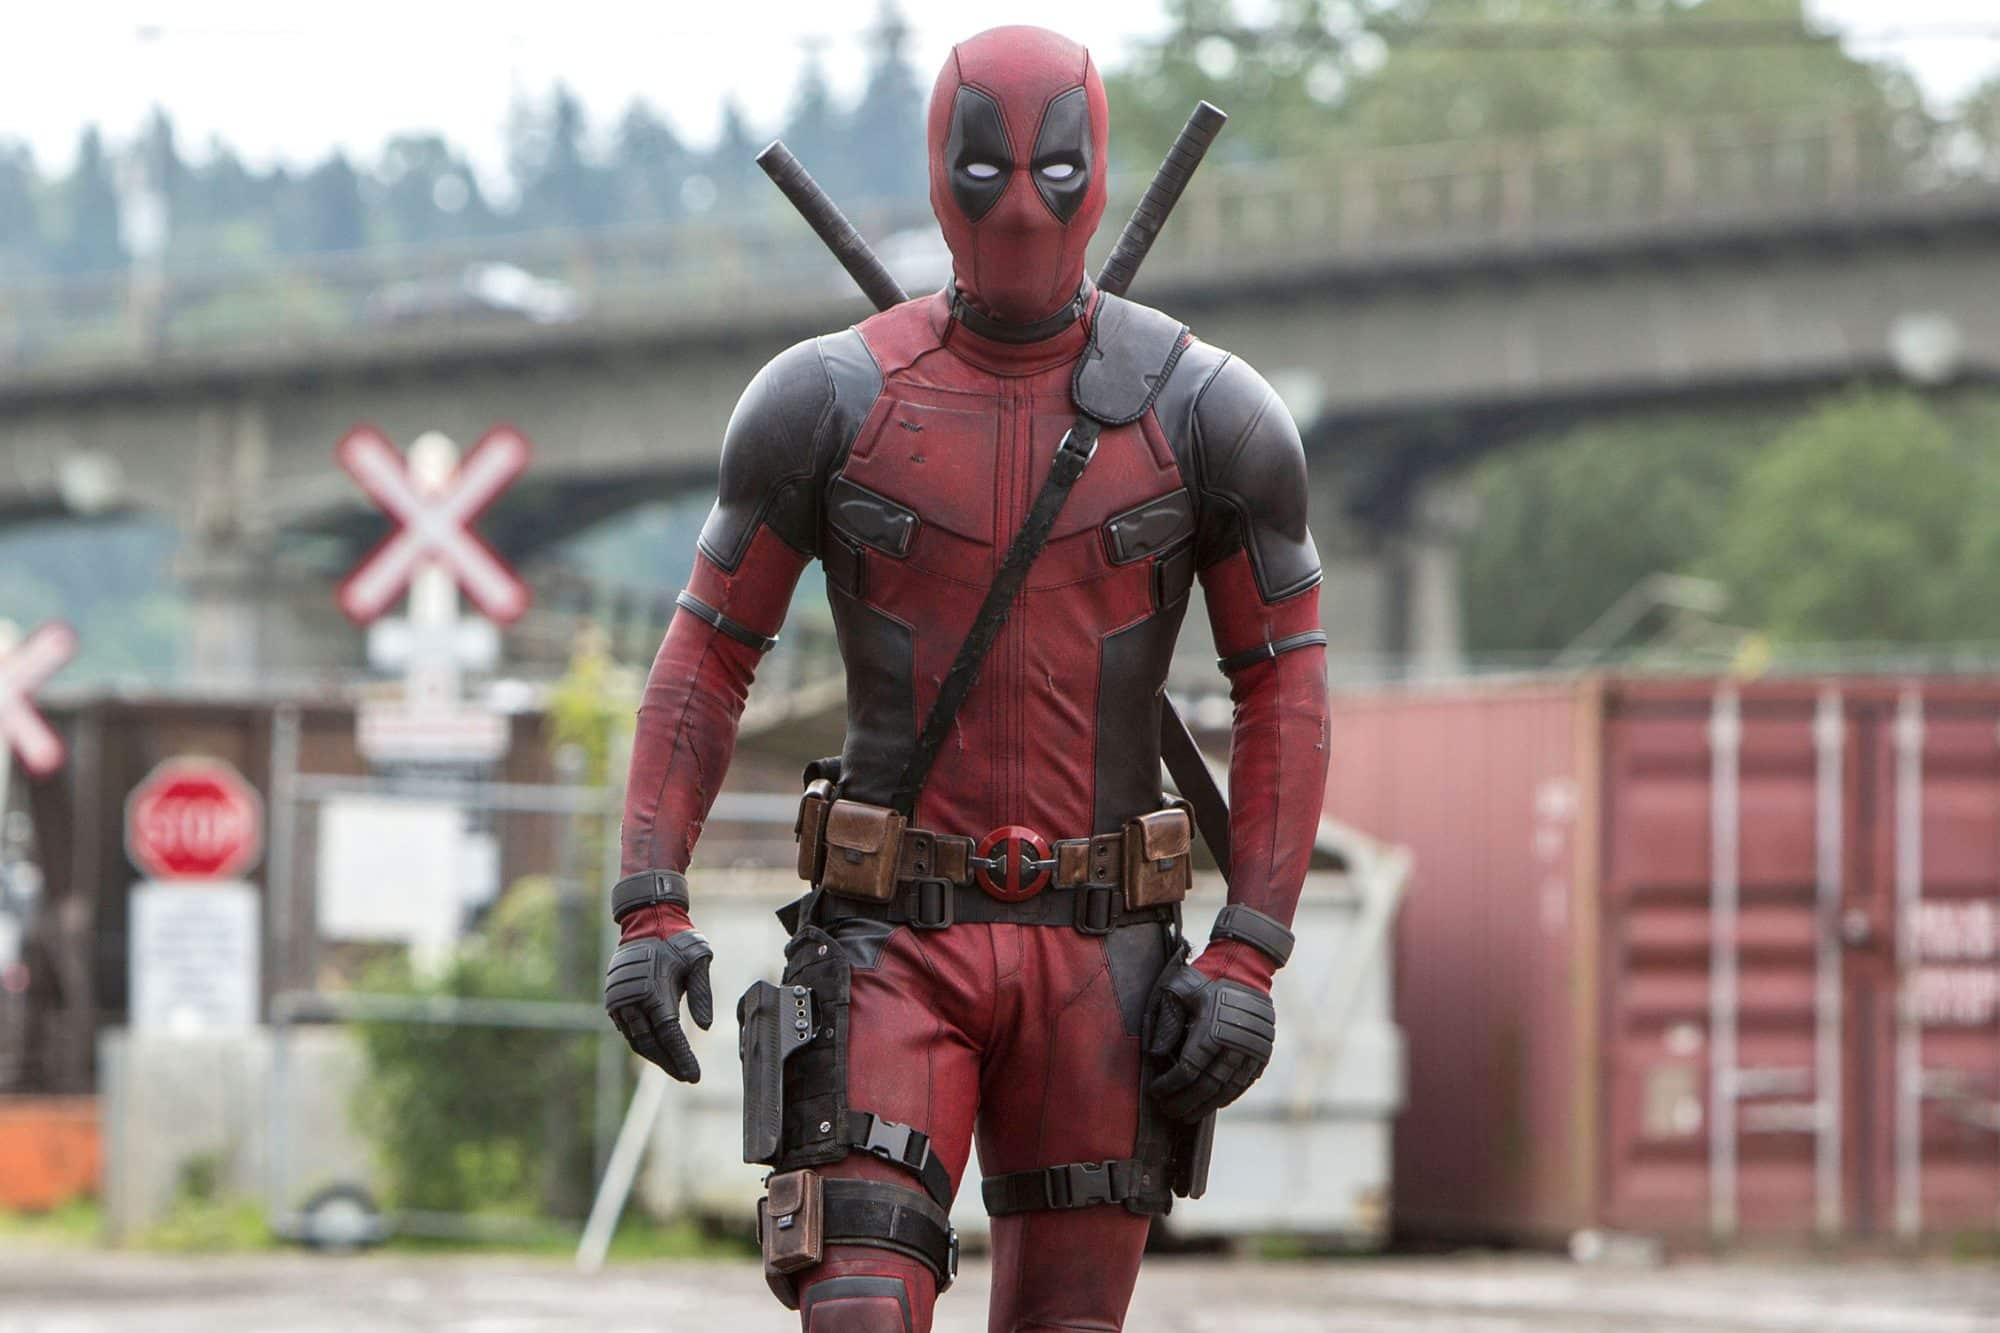 Deadpool Used Irony to Mask an Action Throwback Deadpool 2 R rating 80s action blockbuster movies